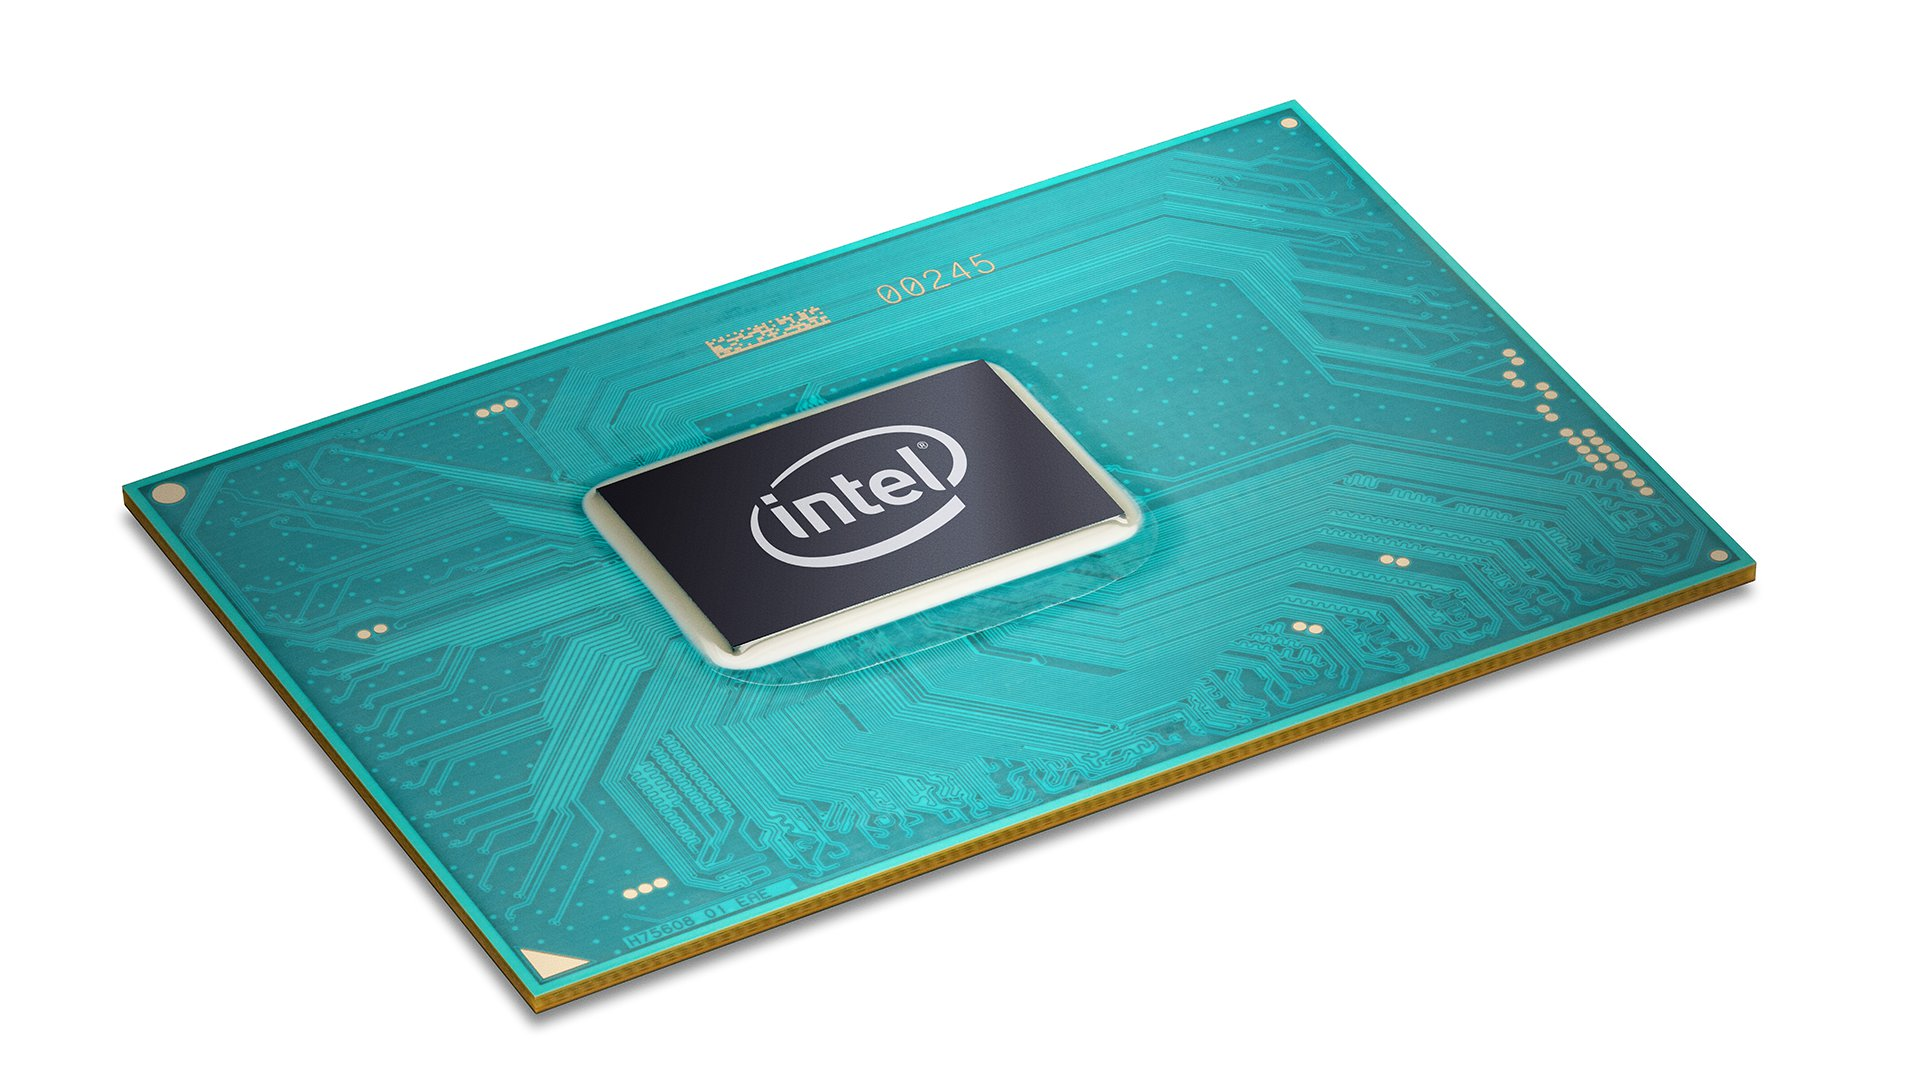 kaby lake1 - Intel Unveils Complete 7th Generation Kaby Lake Processor Lineup